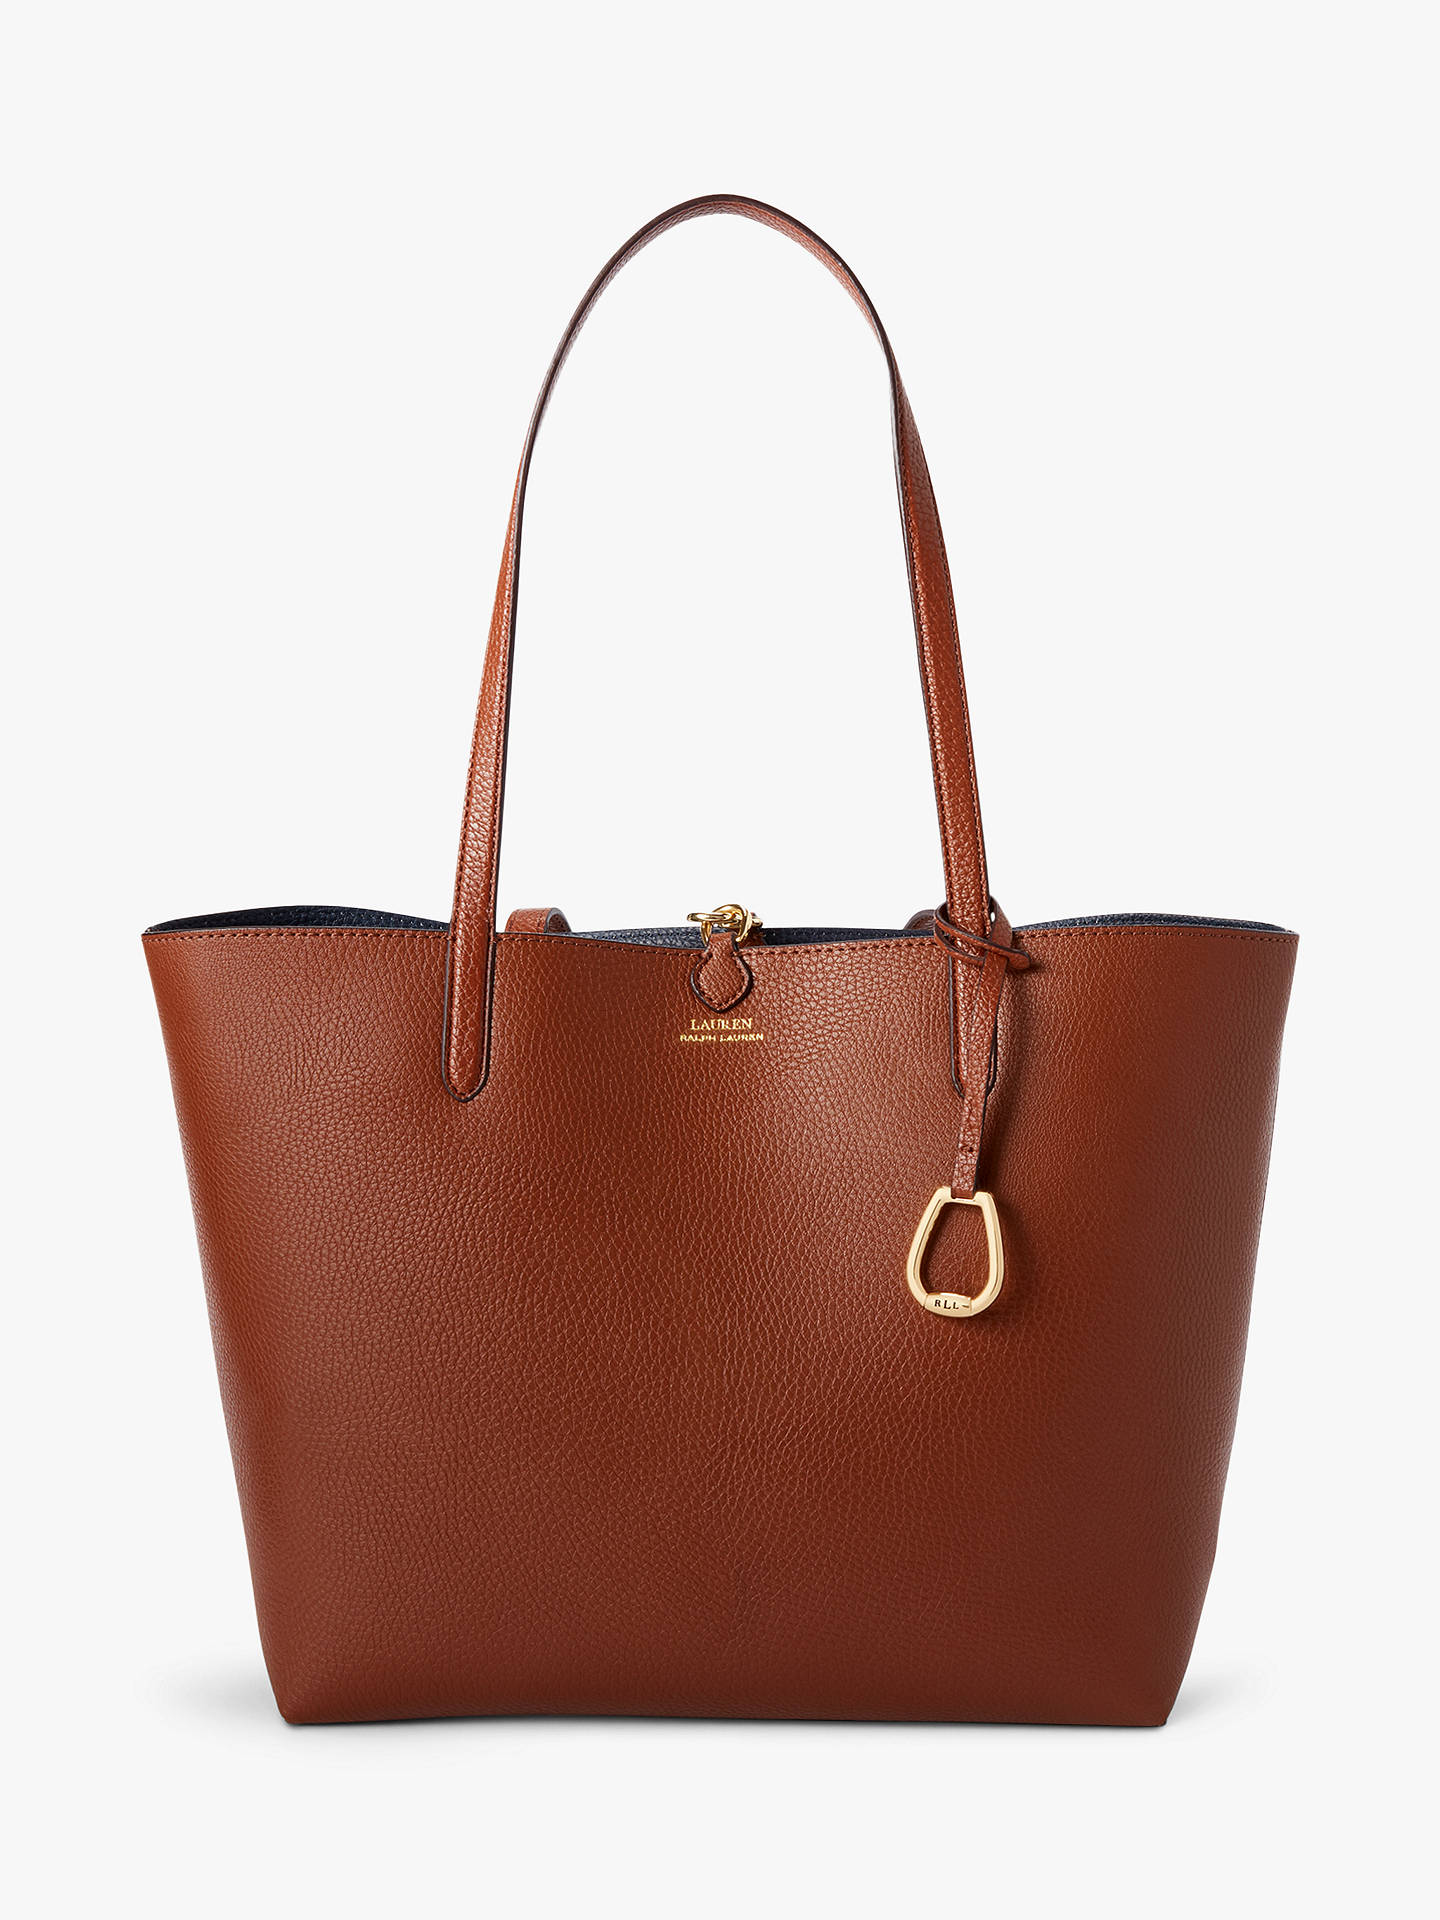 05aa13597a1 Buy Lauren Ralph Lauren Reversible Faux Leather Tote Bag, Tan/Navy Stripe  Online at ...